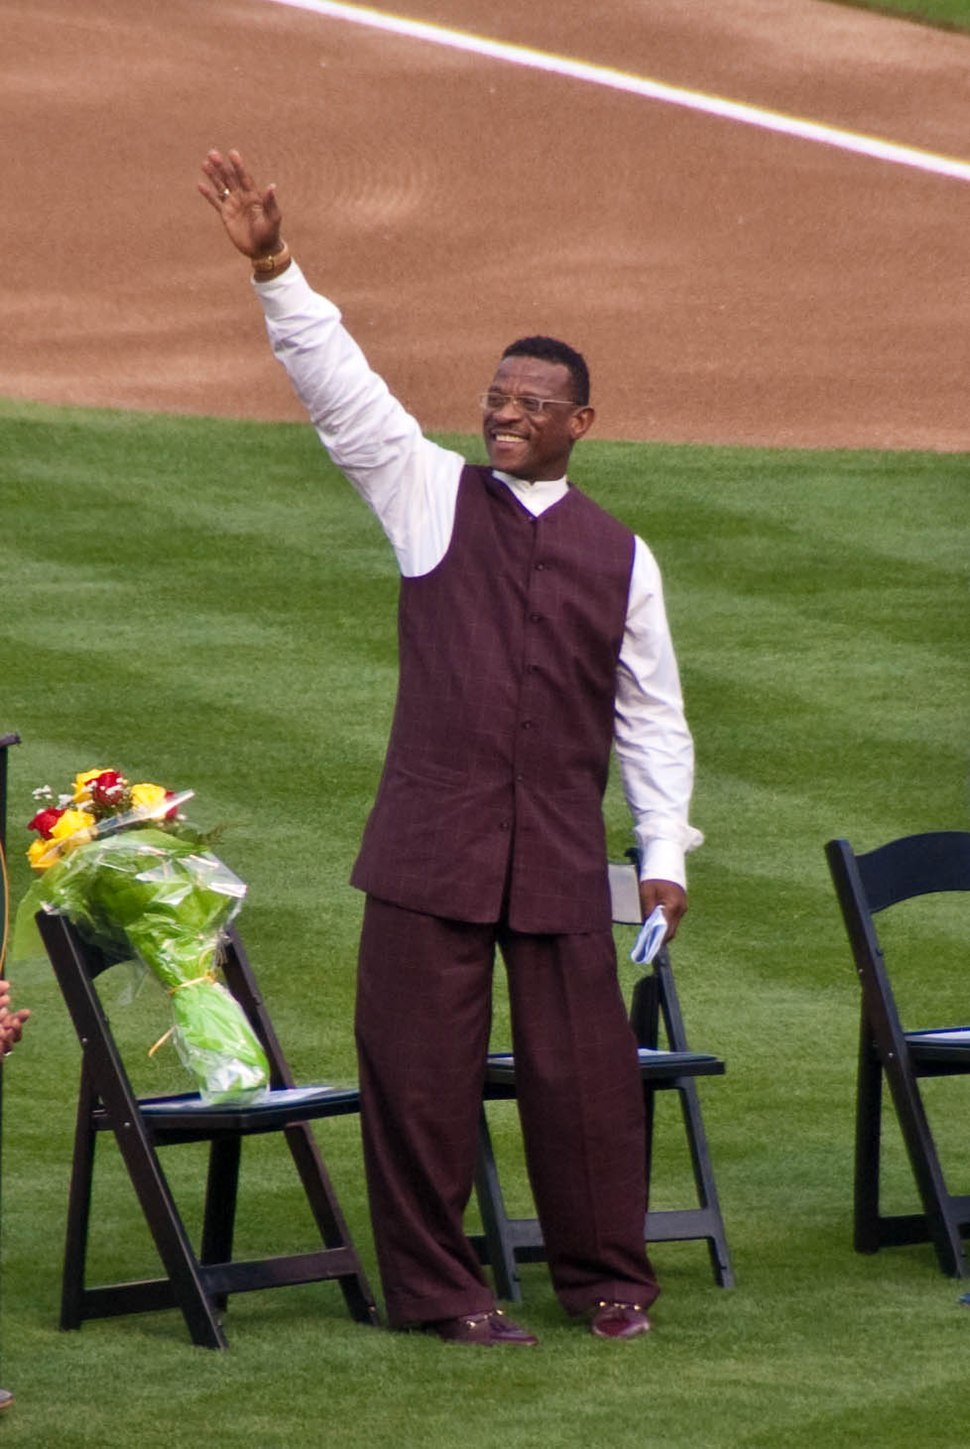 Rickey Henderson Day Saturday, Aug. 1